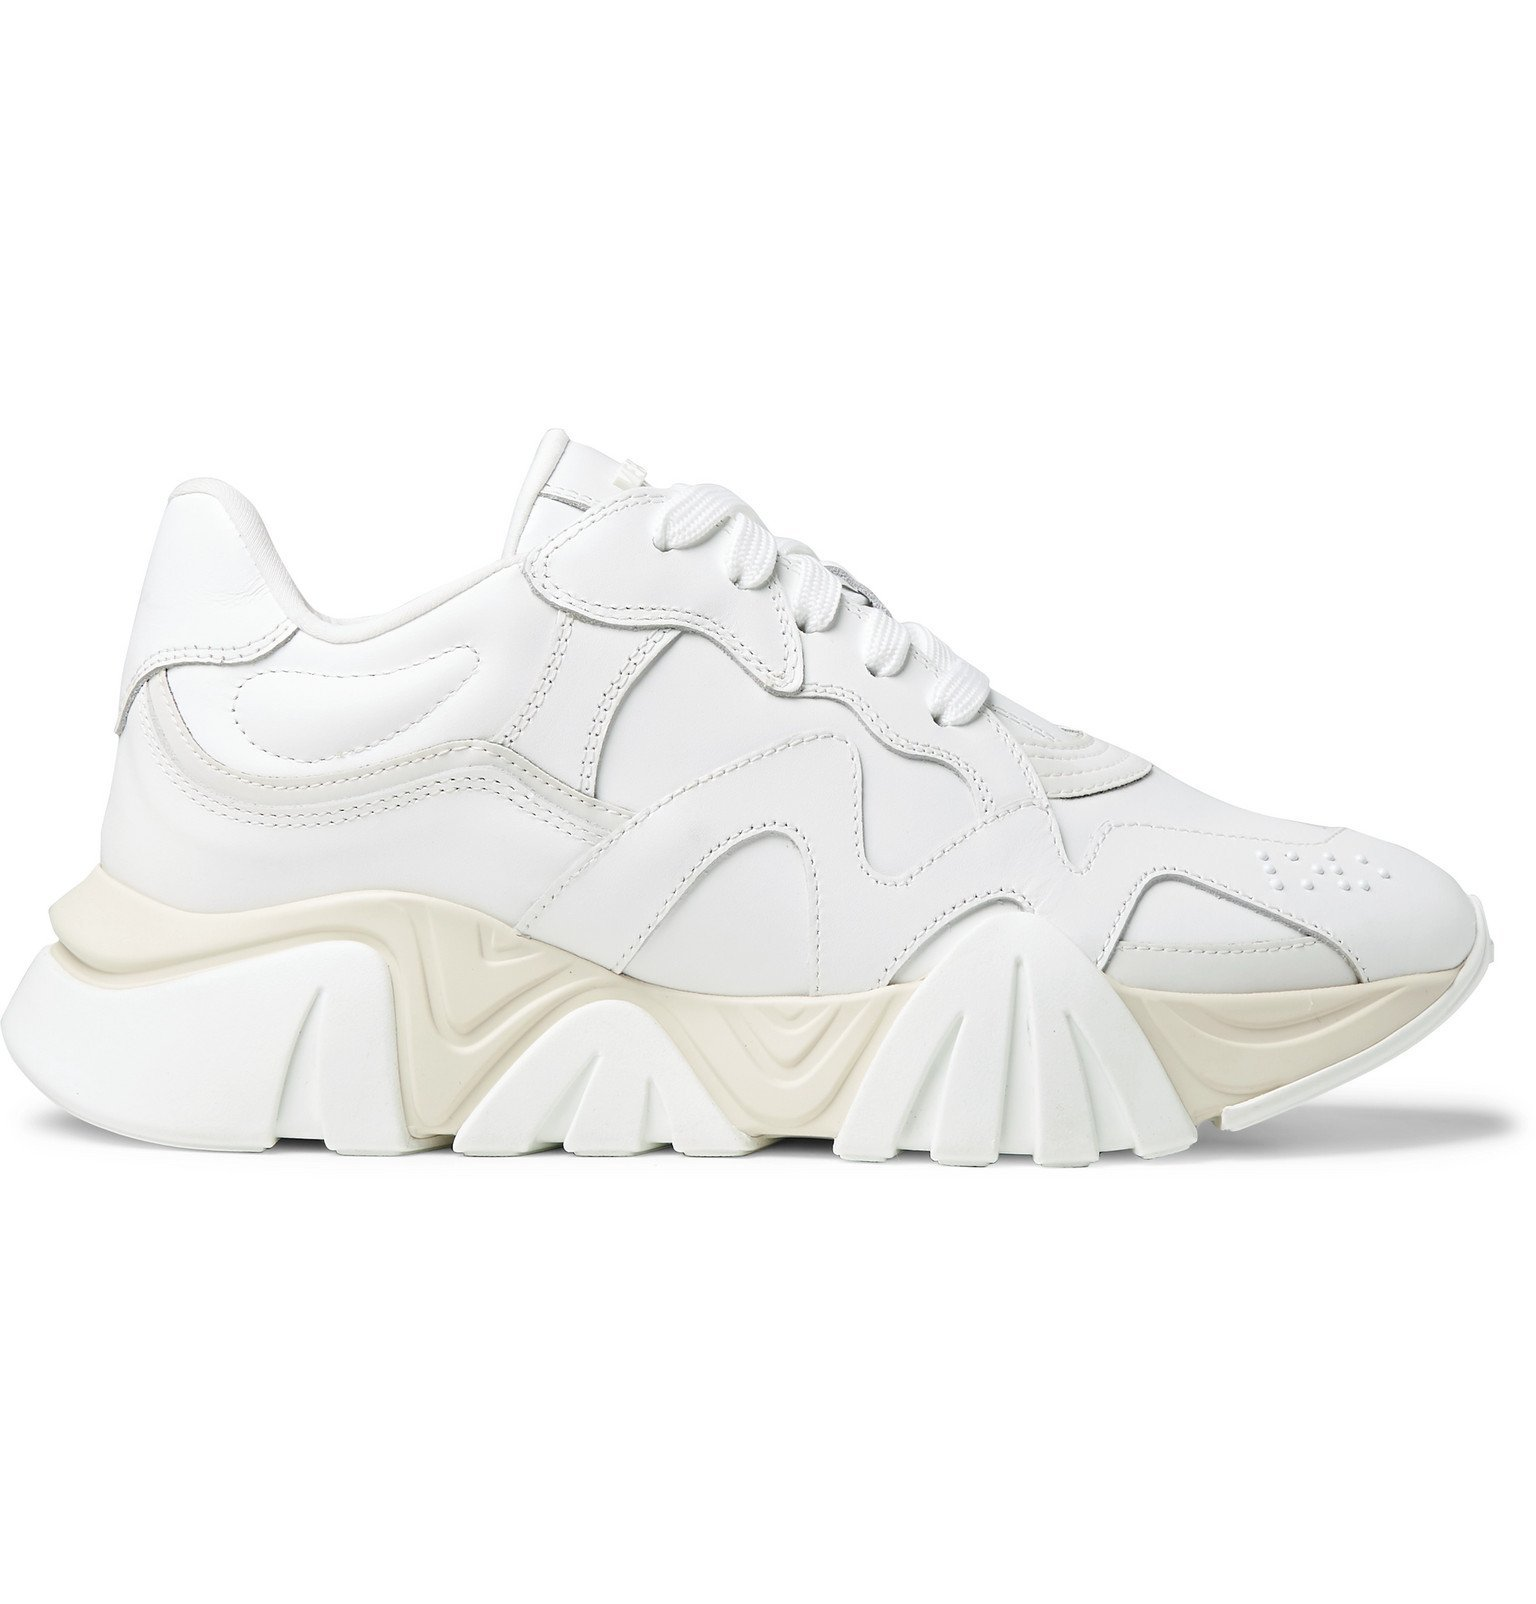 Versace - Squalo Leather Sneakers - White